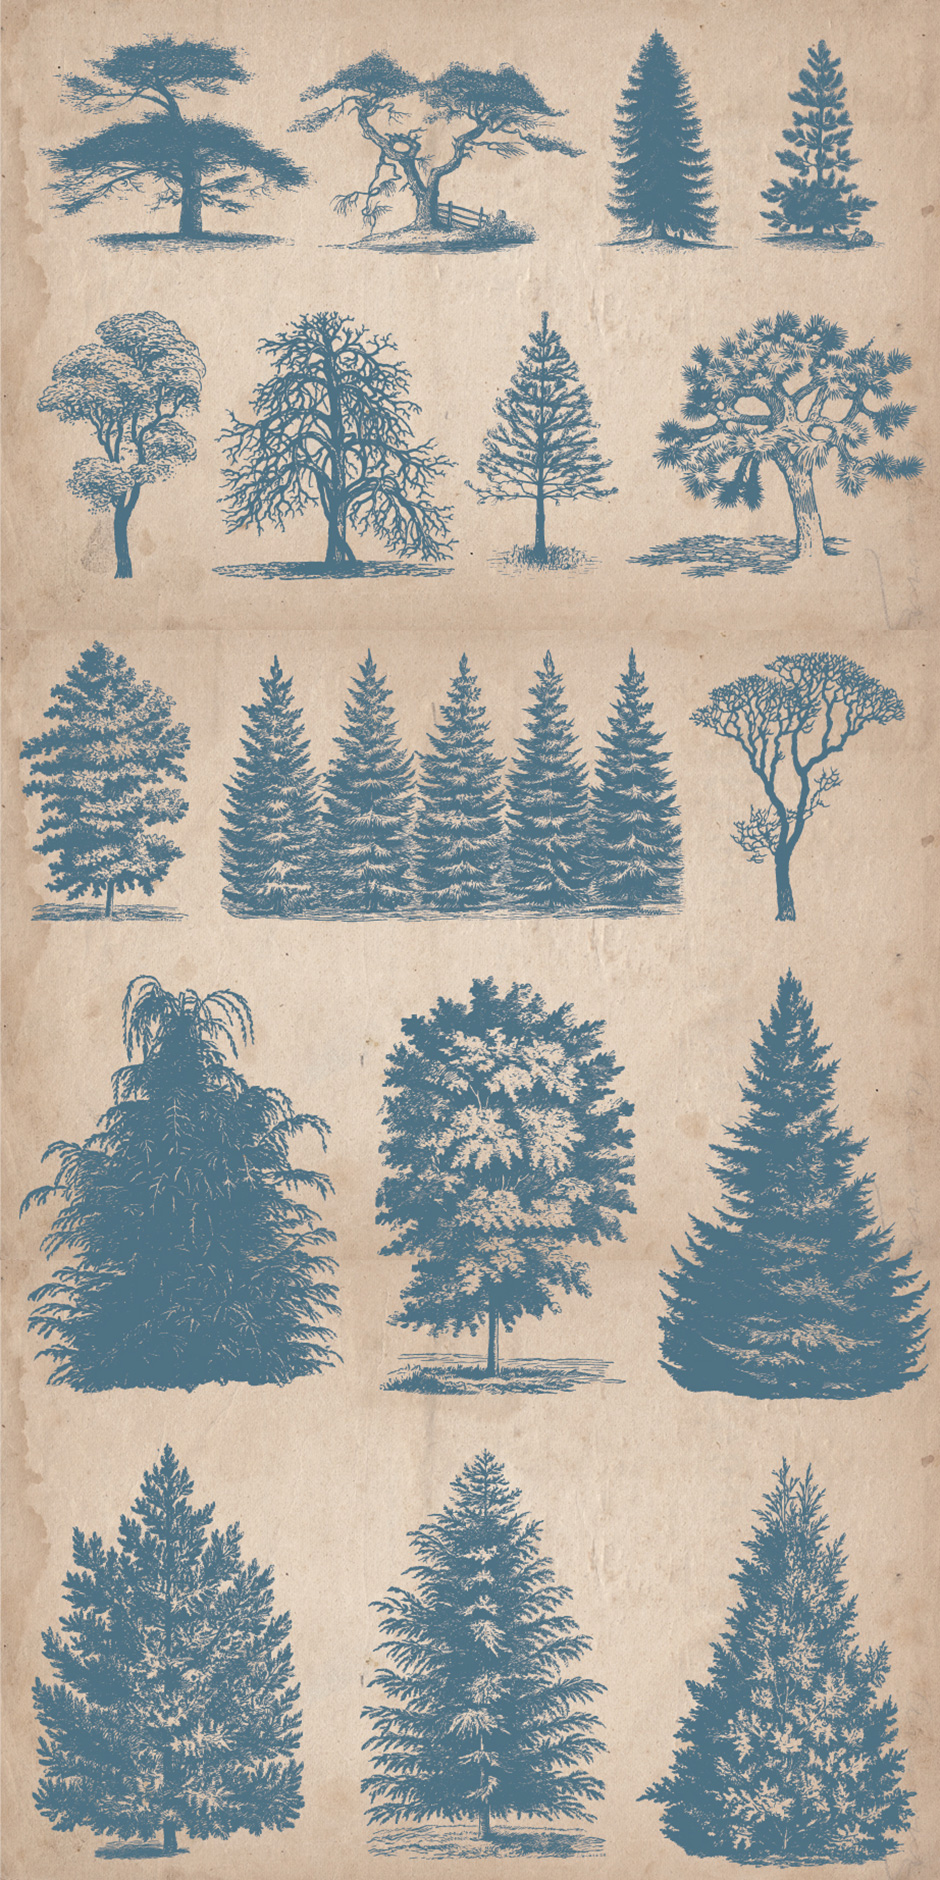 64 Vintage Hand-drawn Trees